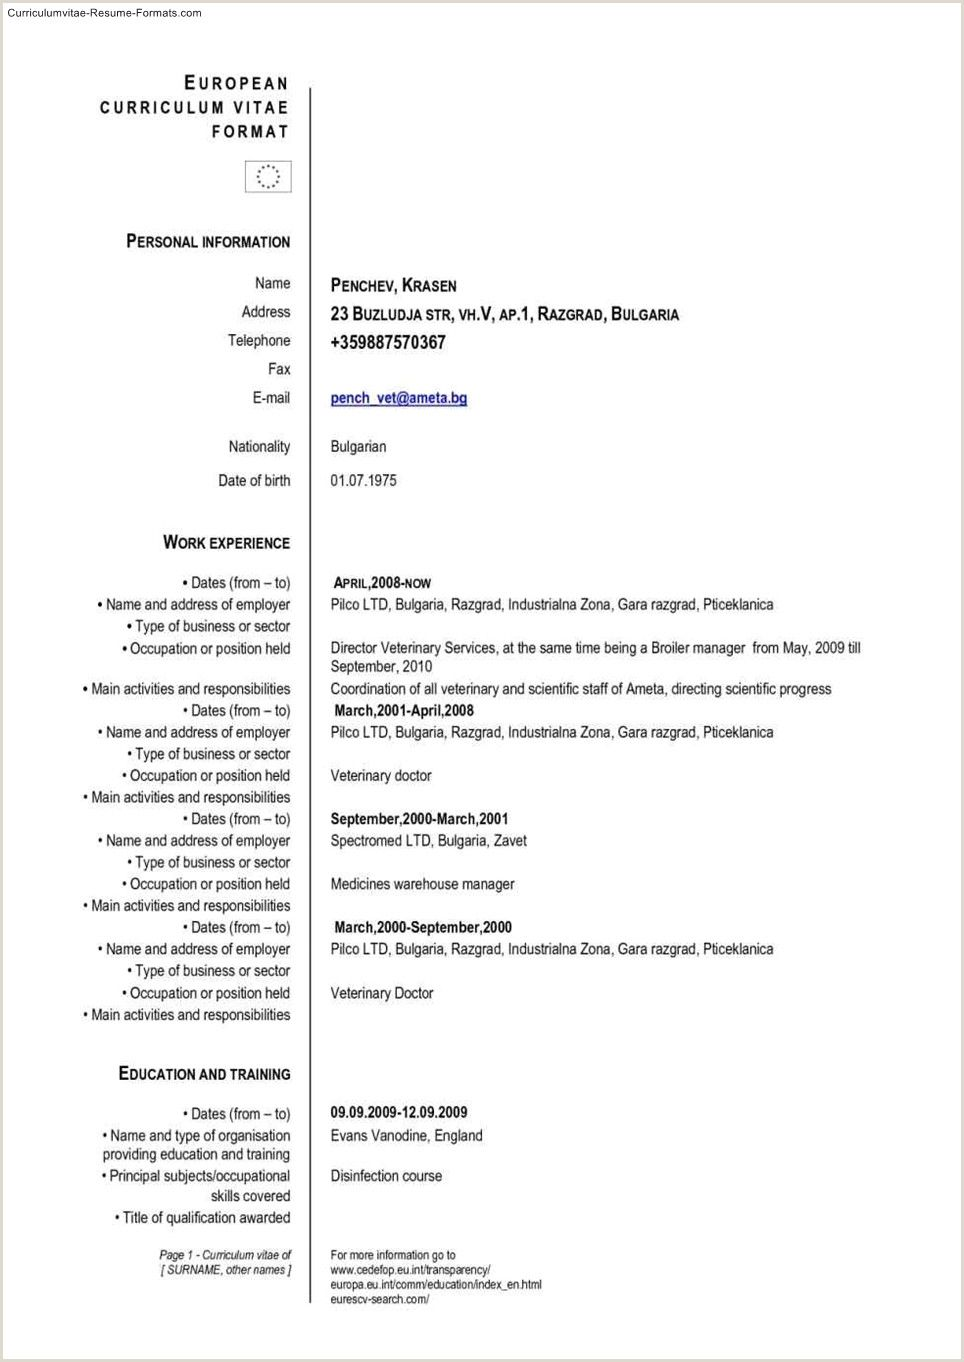 Europass format Cv Template Free Download in 2020